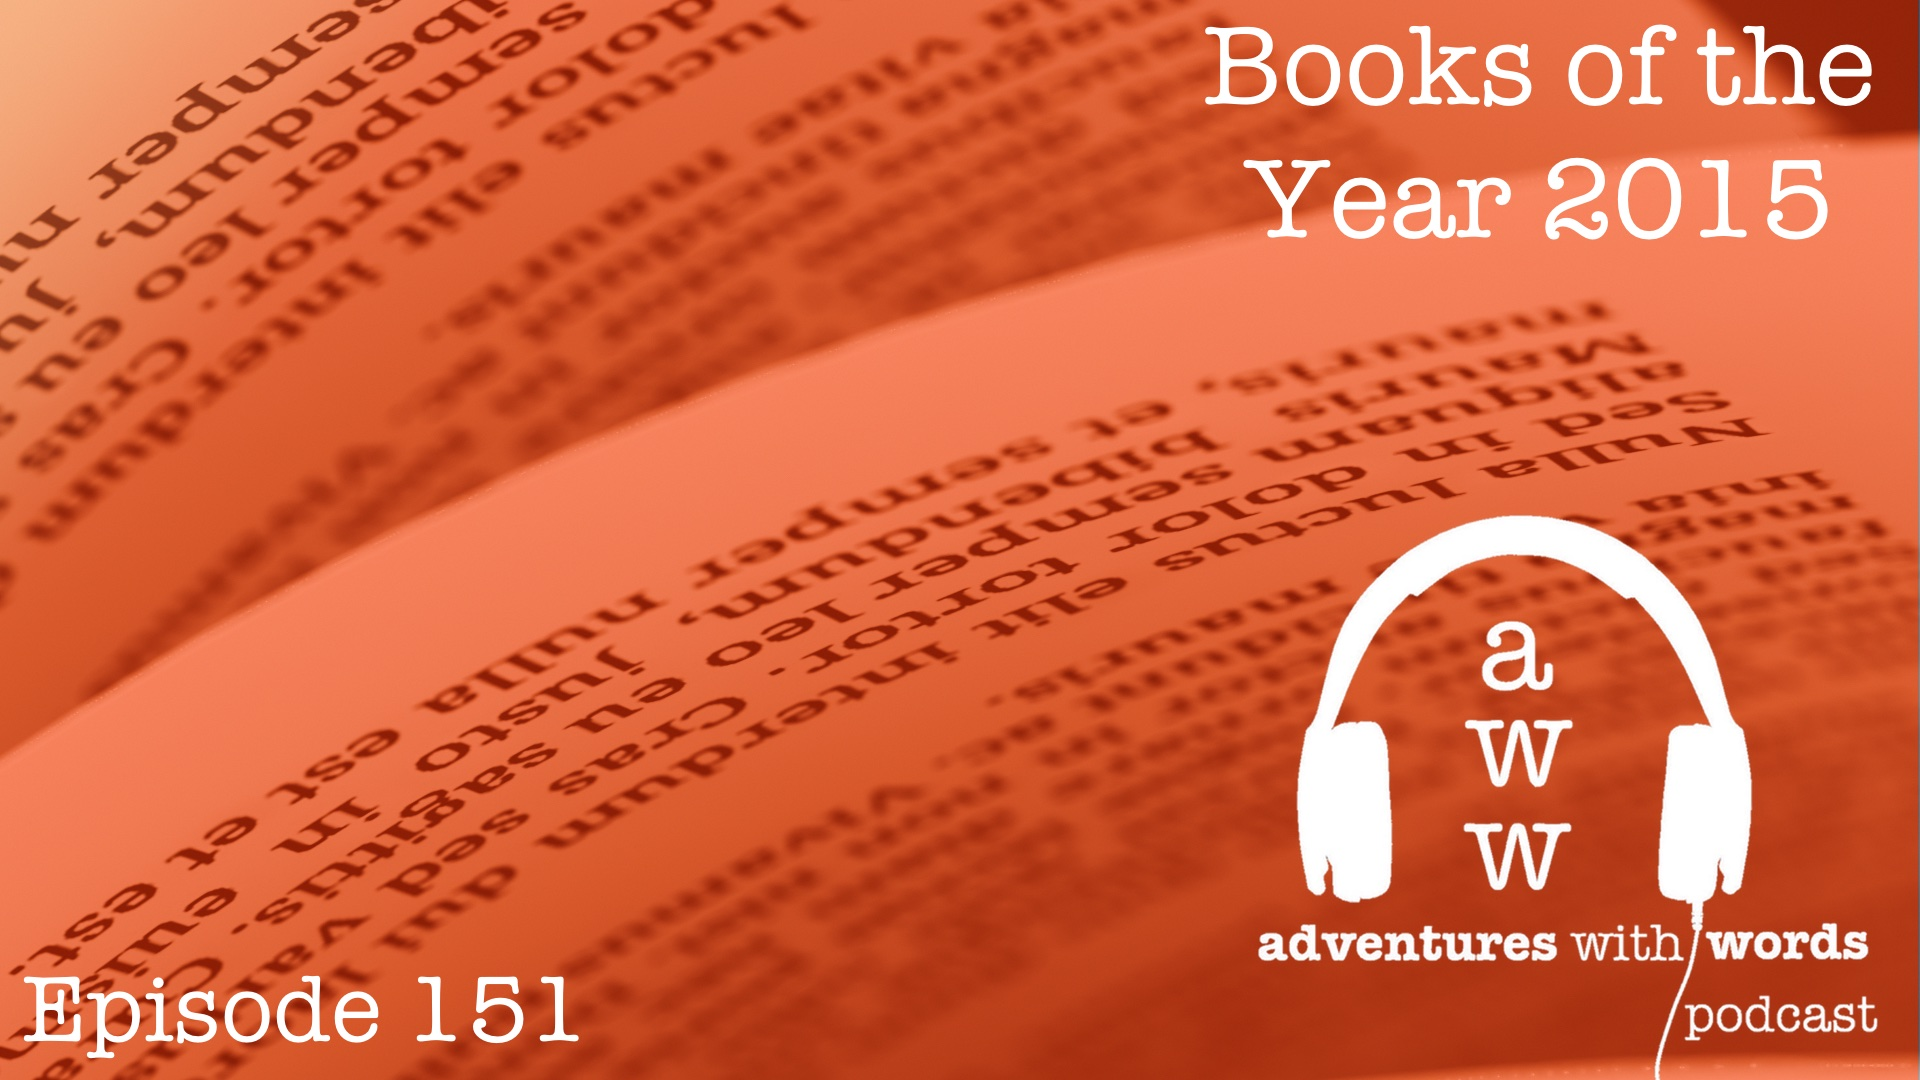 Podcast: Books of the Year 2015